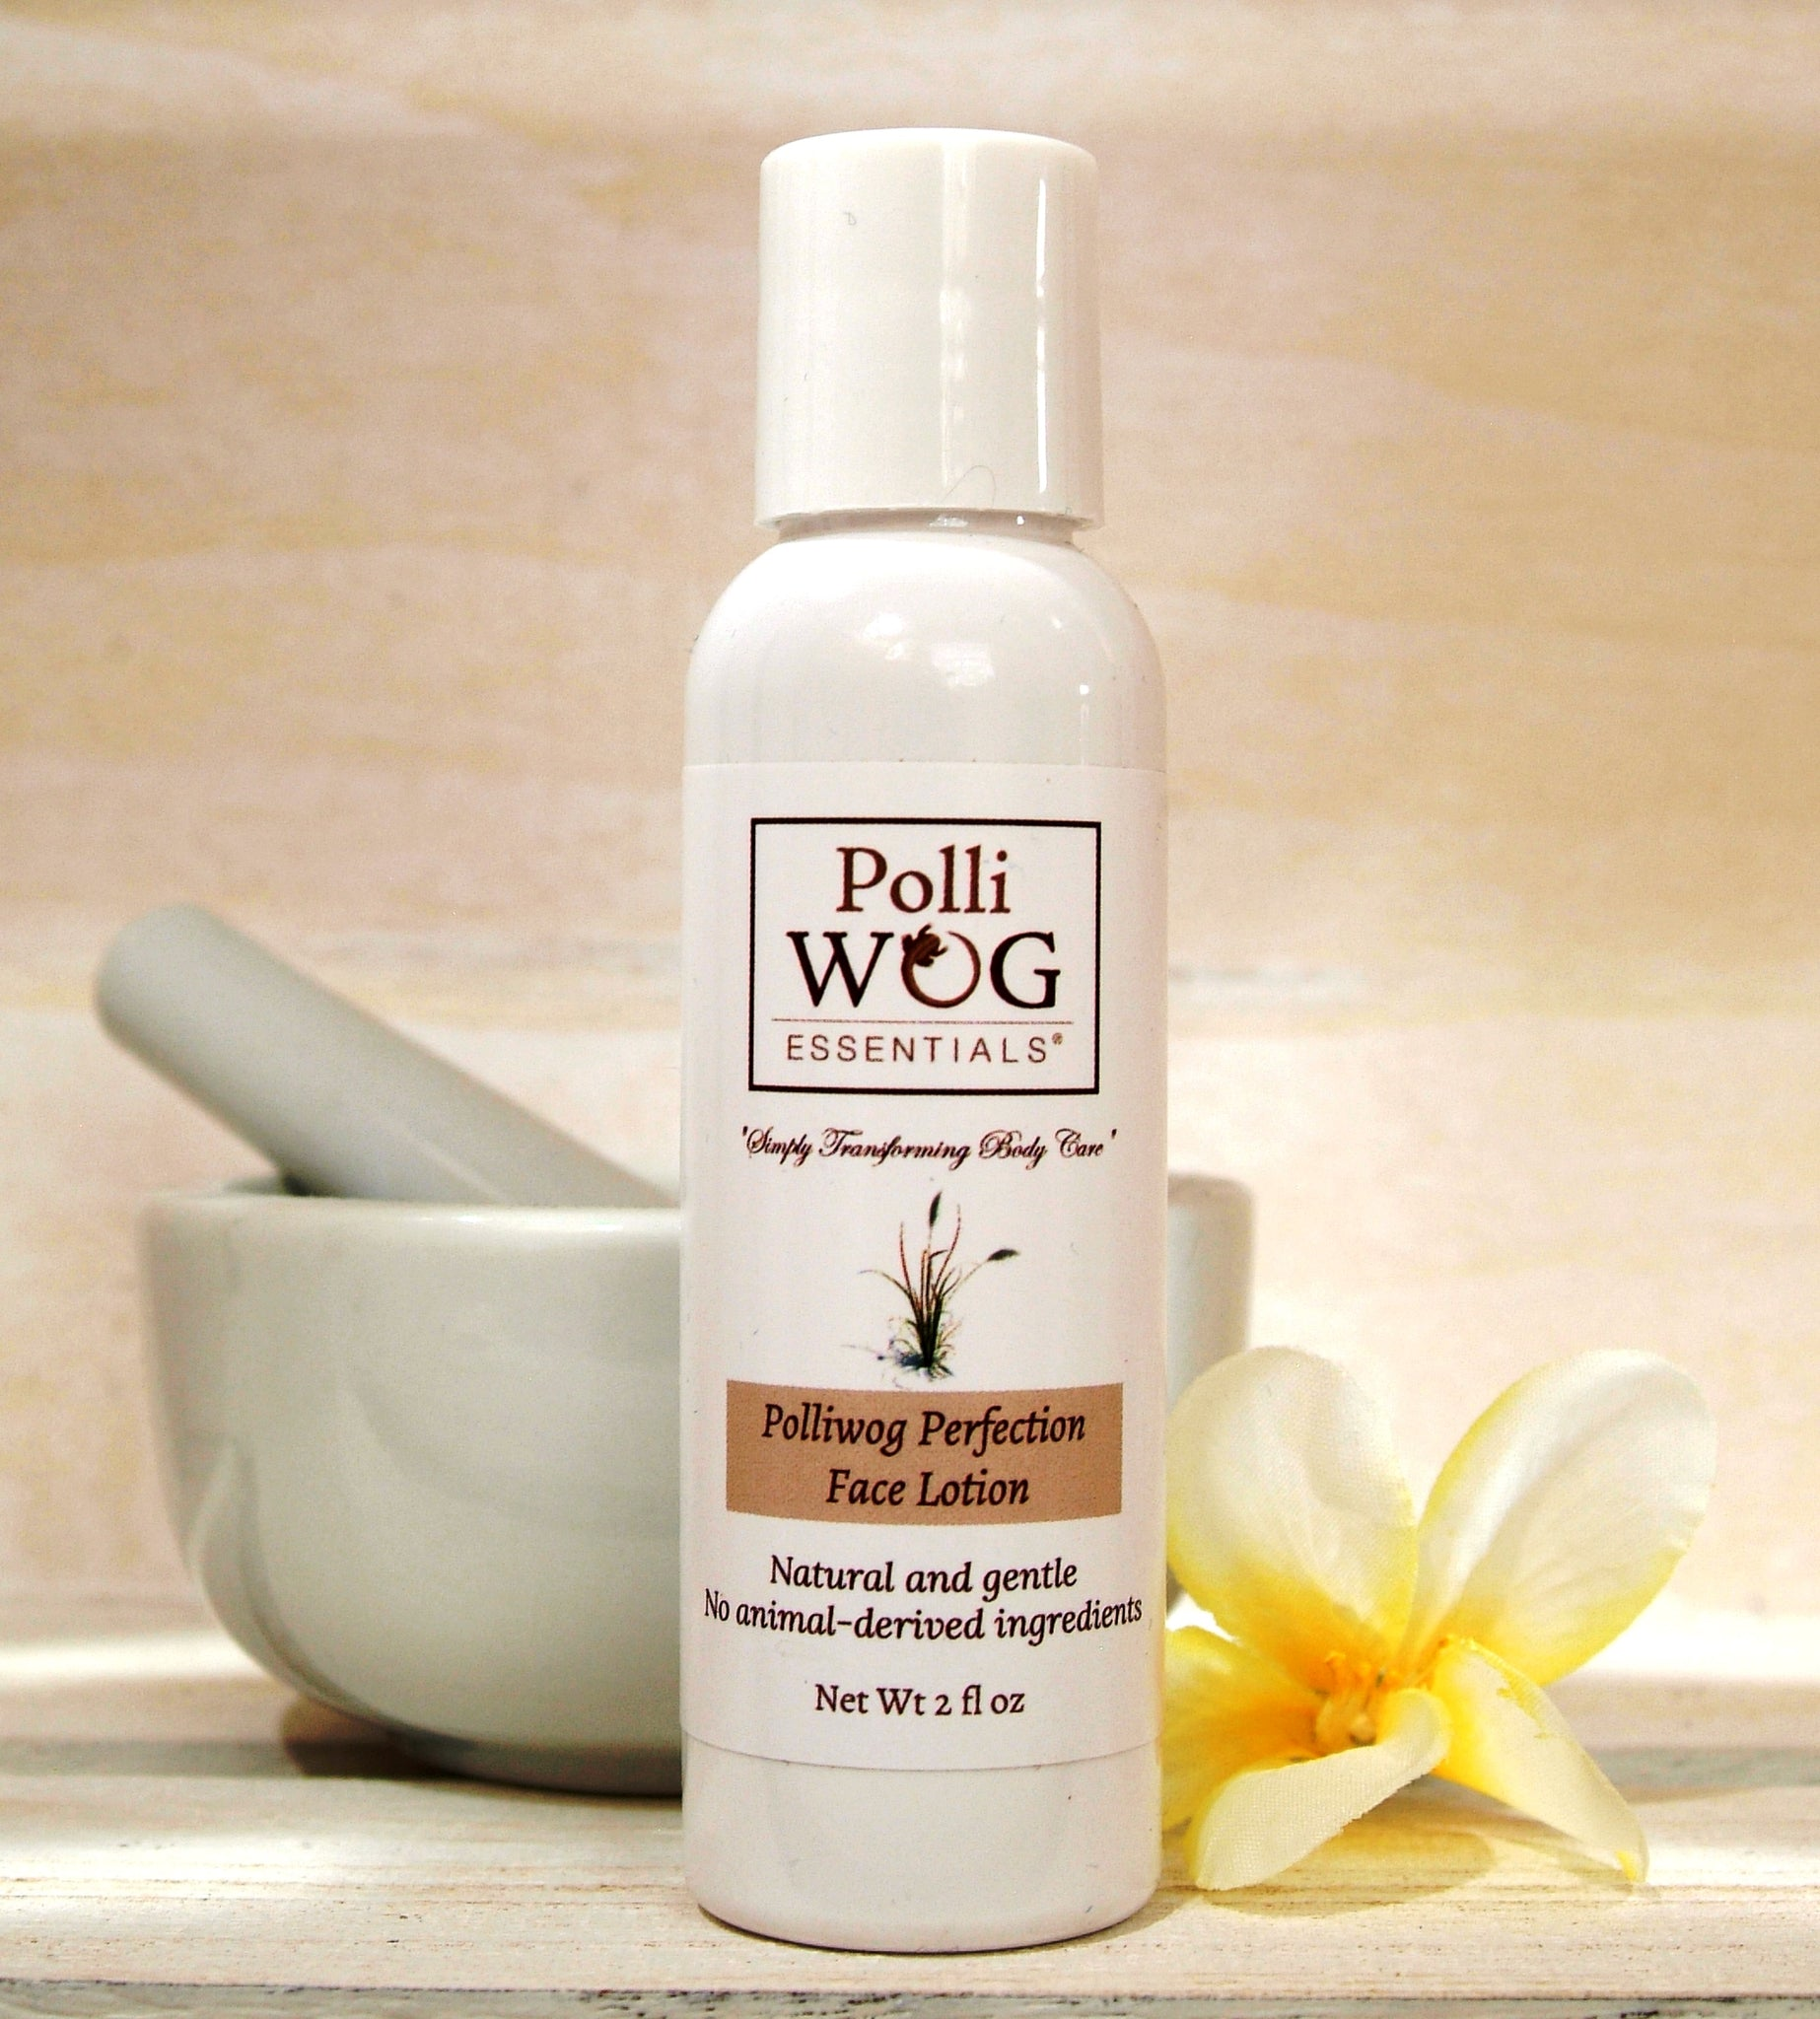 Polliwog Perfection Face Lotion